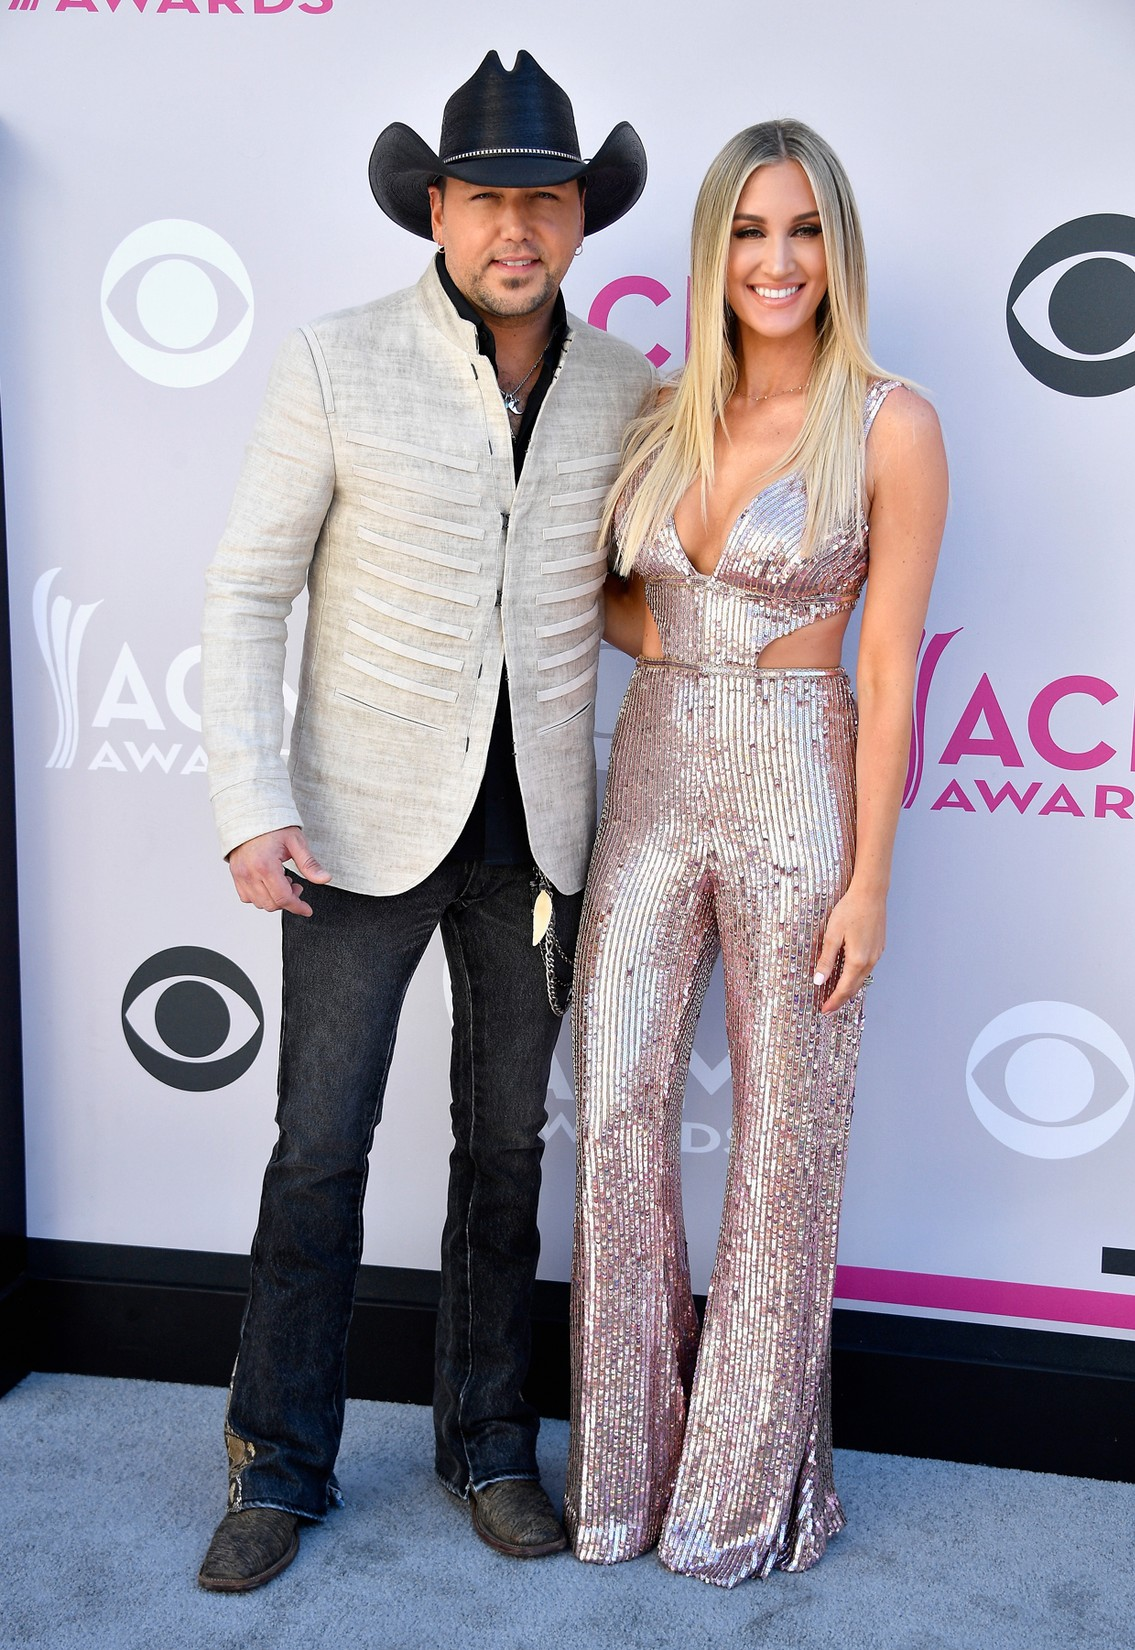 Jason Aldean and Brittany Kerr attend the 52nd Academy Of Country Music Awards at Toshiba Plaza on April 2, 2017 in Las Vegas.